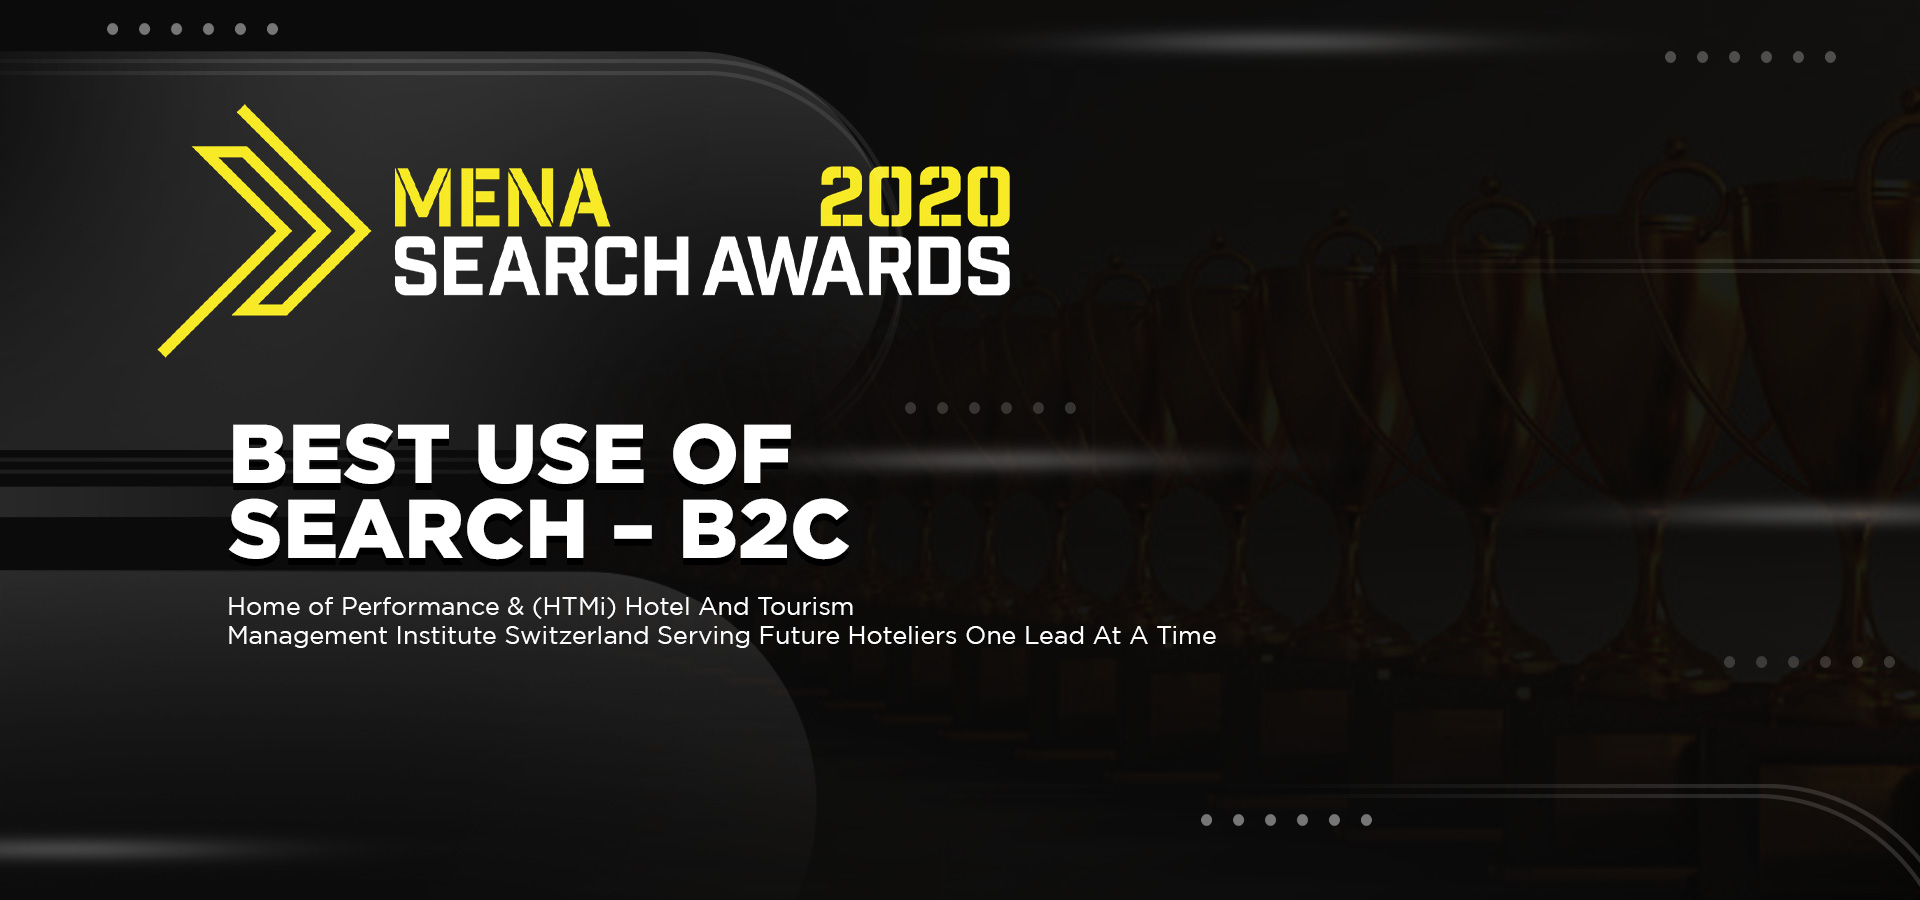 MENA 2020 Search Award Winner.